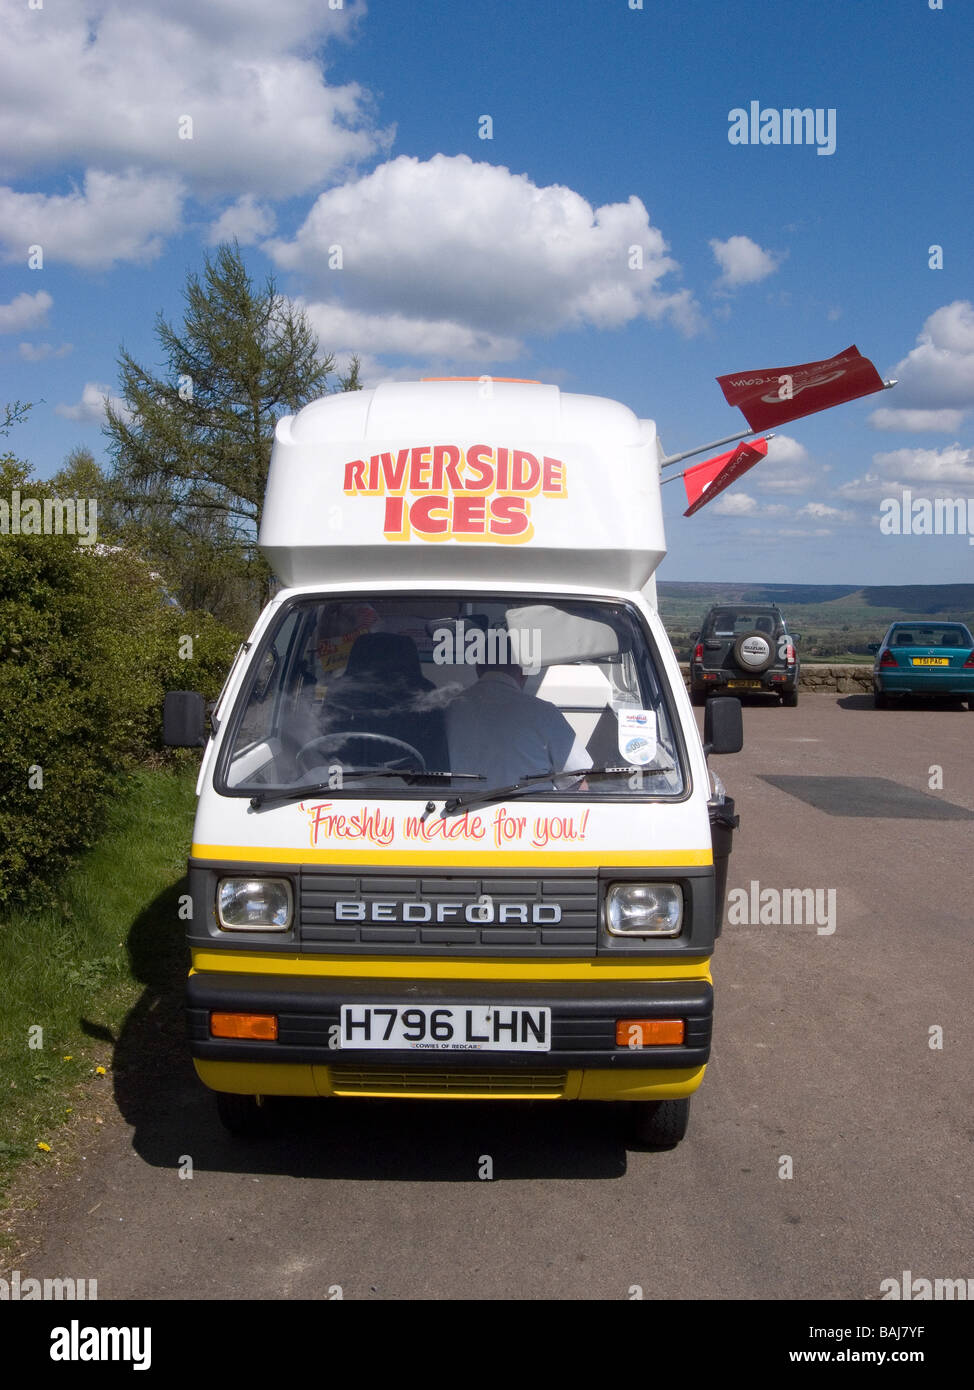 4e497ab34a Riverside Ices Stock Photos   Riverside Ices Stock Images - Alamy